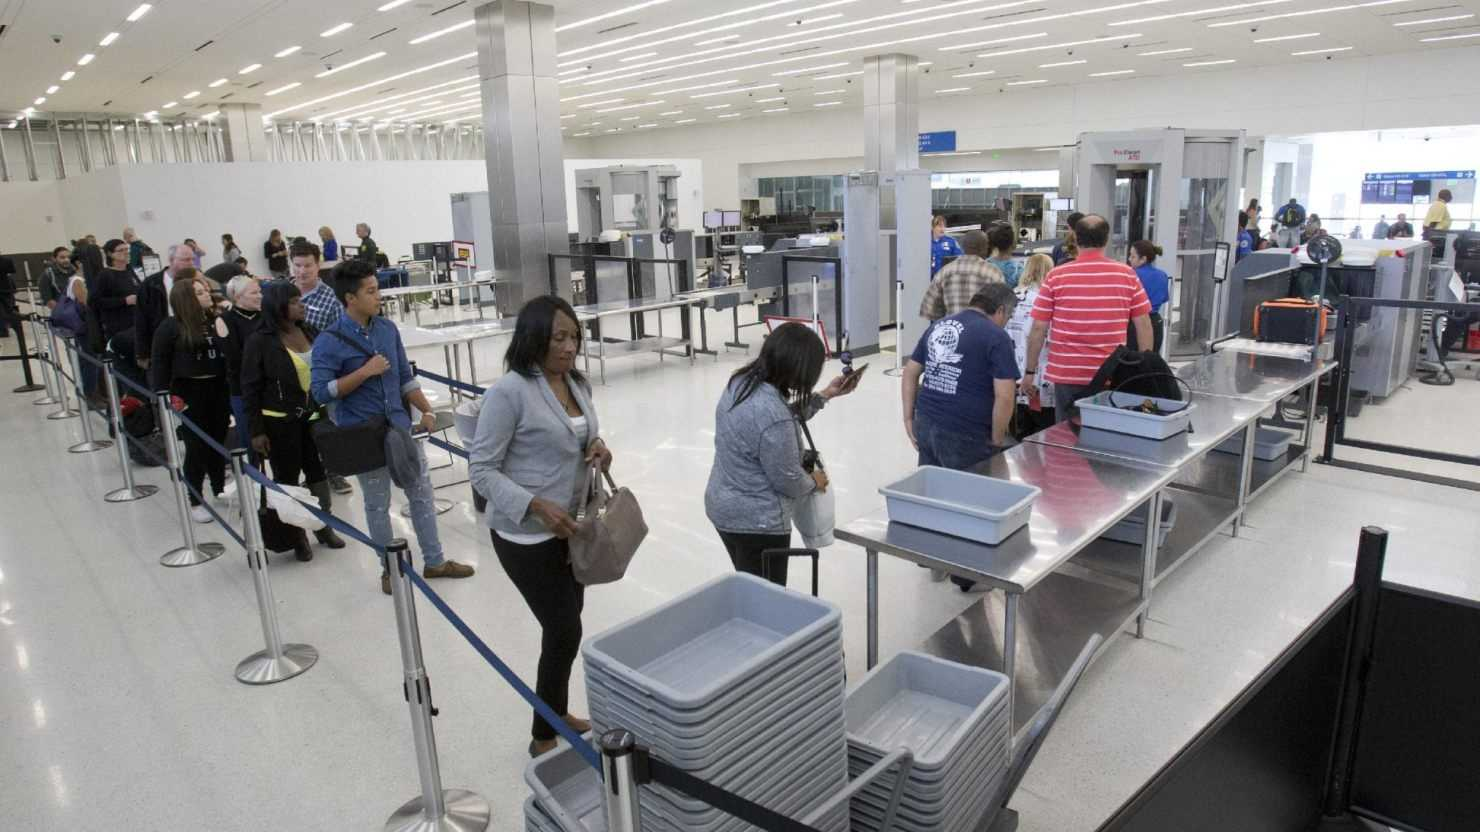 Passengers load their items into bins as they pass through security before flying out of the Fort Lauderdale-Hollywood International Airport, Friday, Dec. 18, 2015, in Fort Lauderdale, Fla. Transportation Security Administration spokesperson Sari Koshetz said that about 8,000 lbs. of prohibited items were confiscated this year by the TSA at the Fort Lauderdale airport.